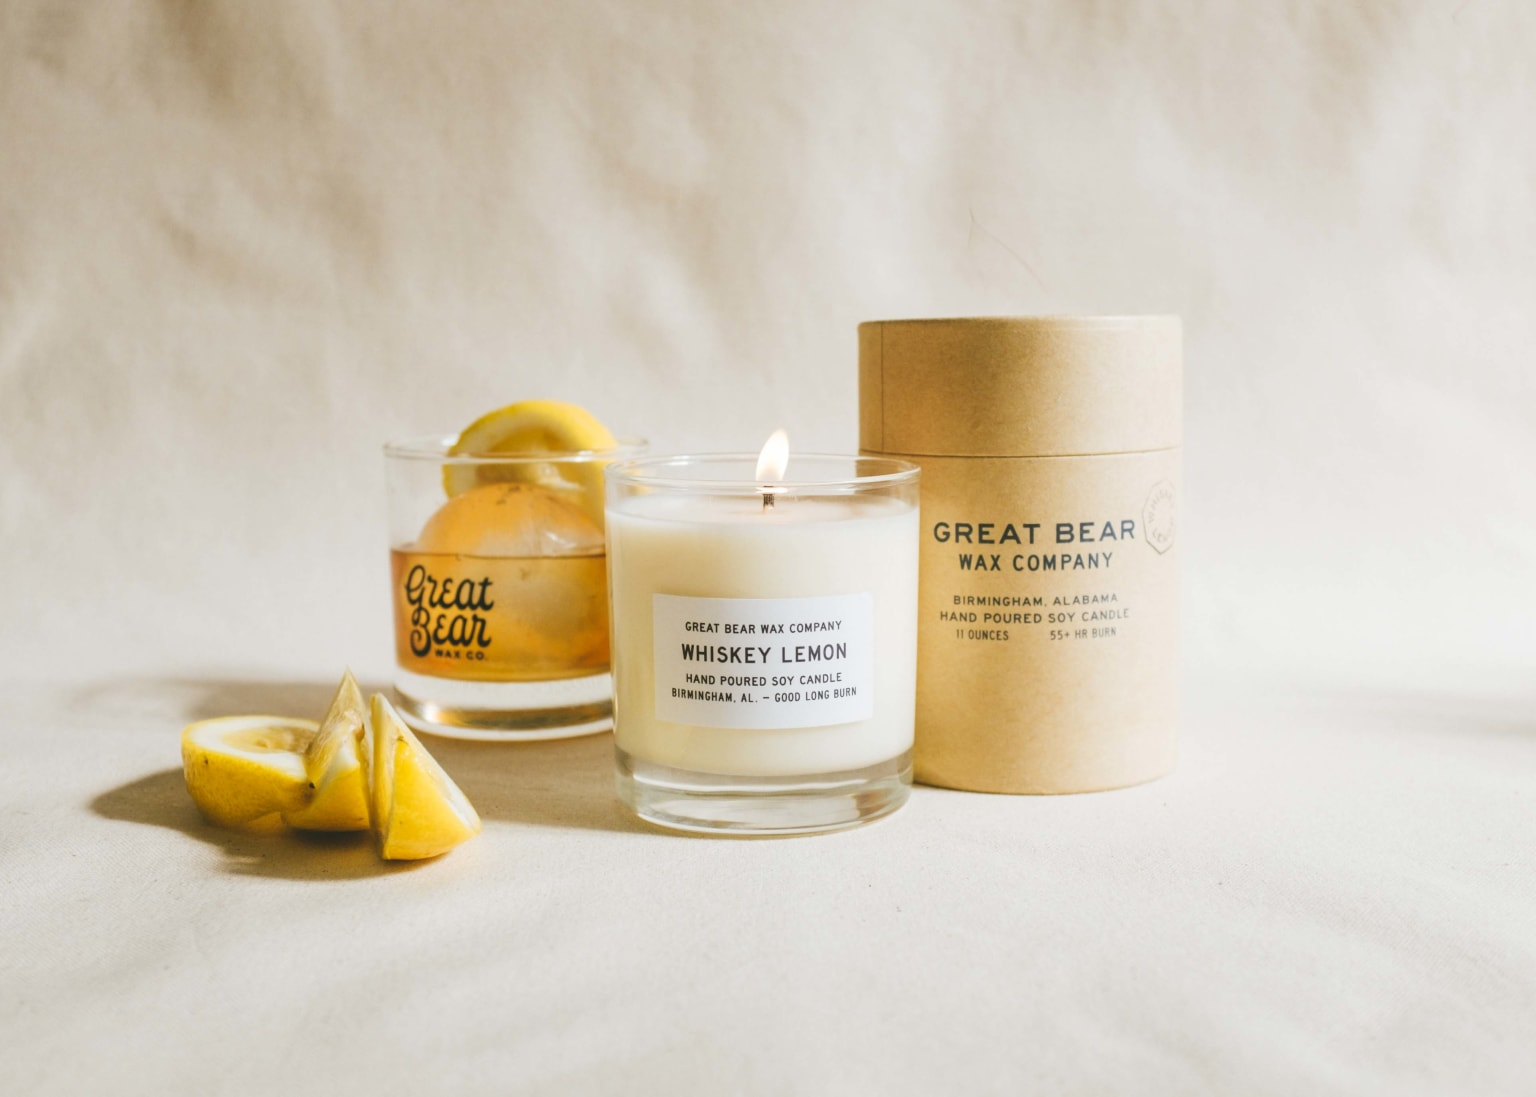 Great Bear Wax Co. Rebrand and Packaging